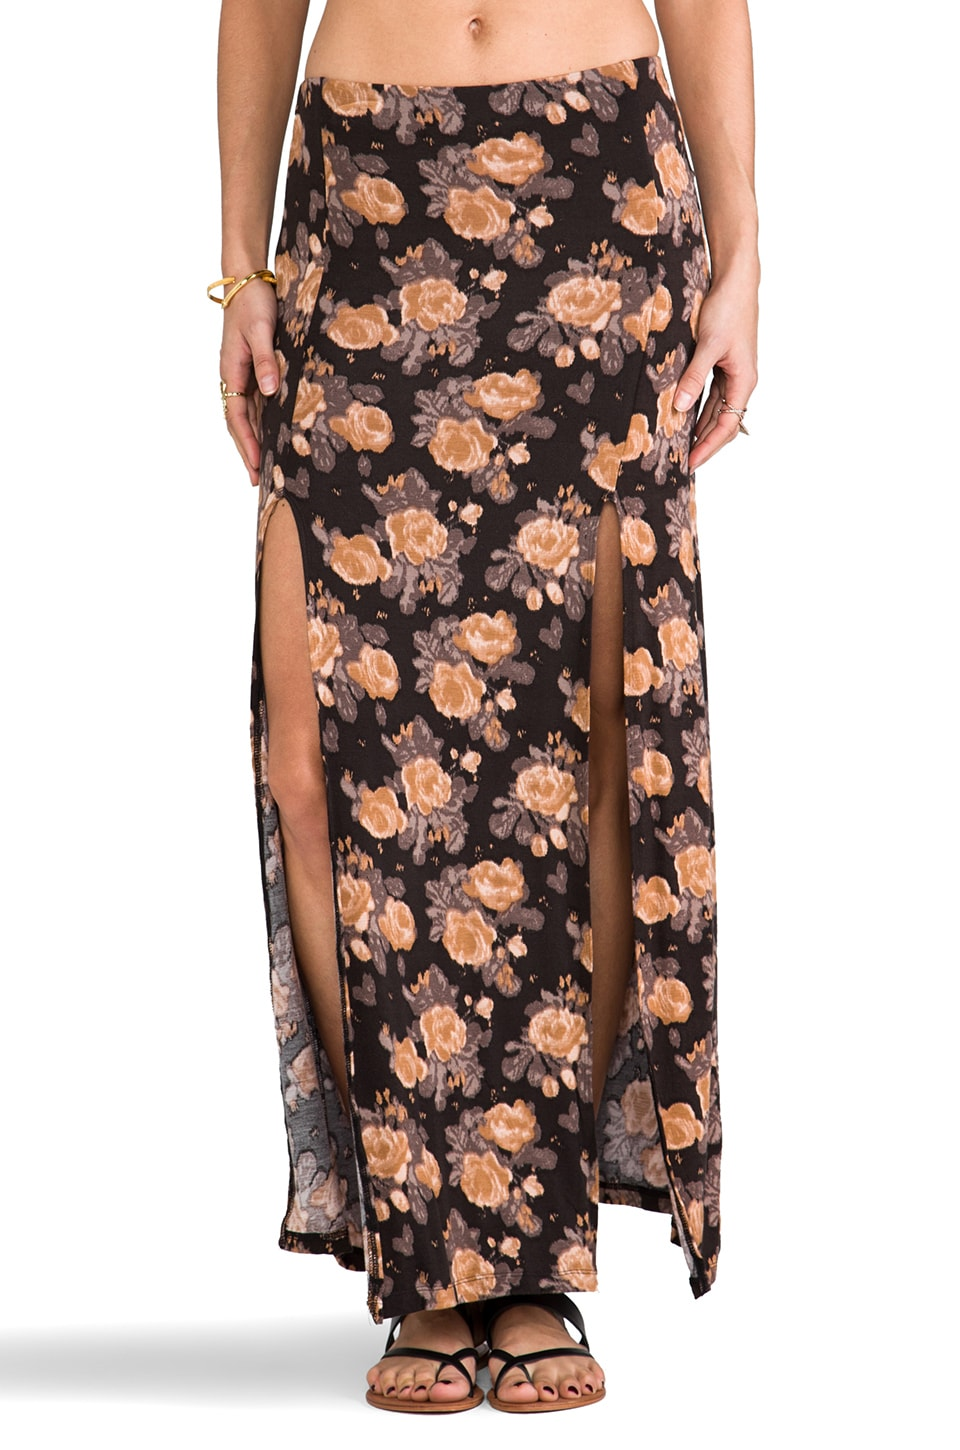 Obey Love Scene High Slit Skirt in Mauve Floral